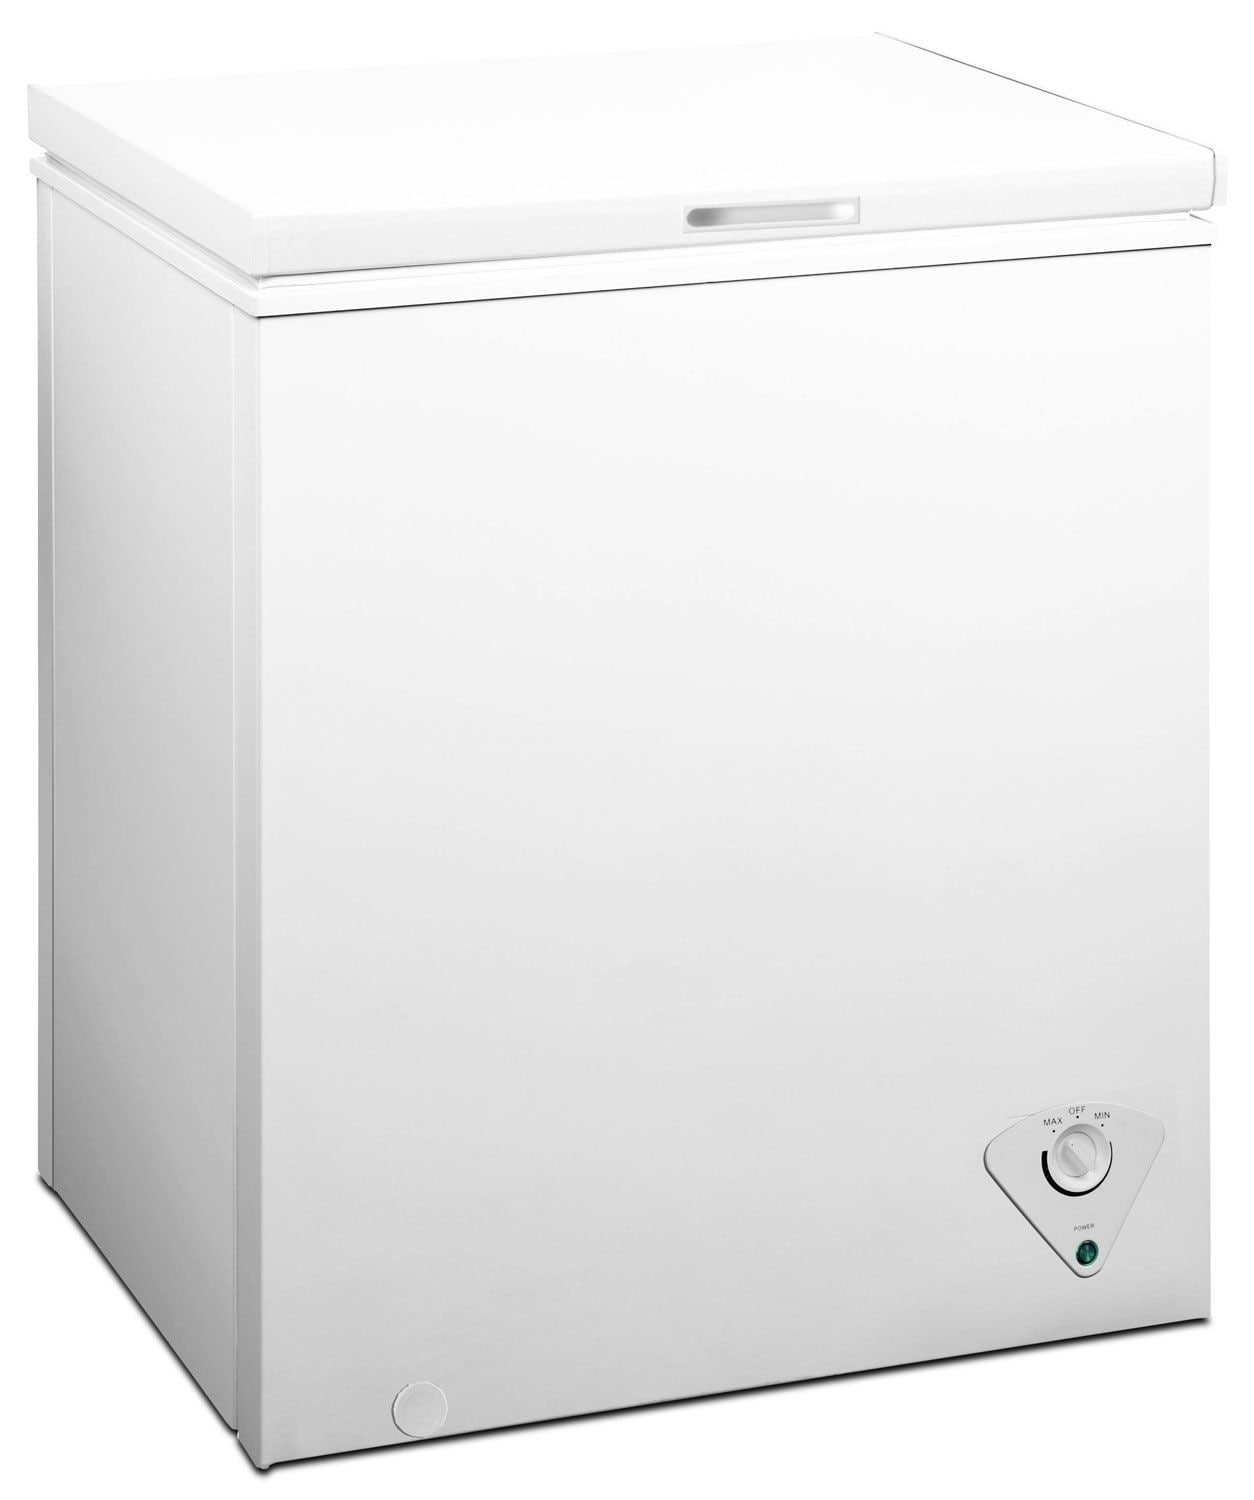 Refrigerators and Freezers - Midea 5.0 Cu. Ft. Chest Freezer - White